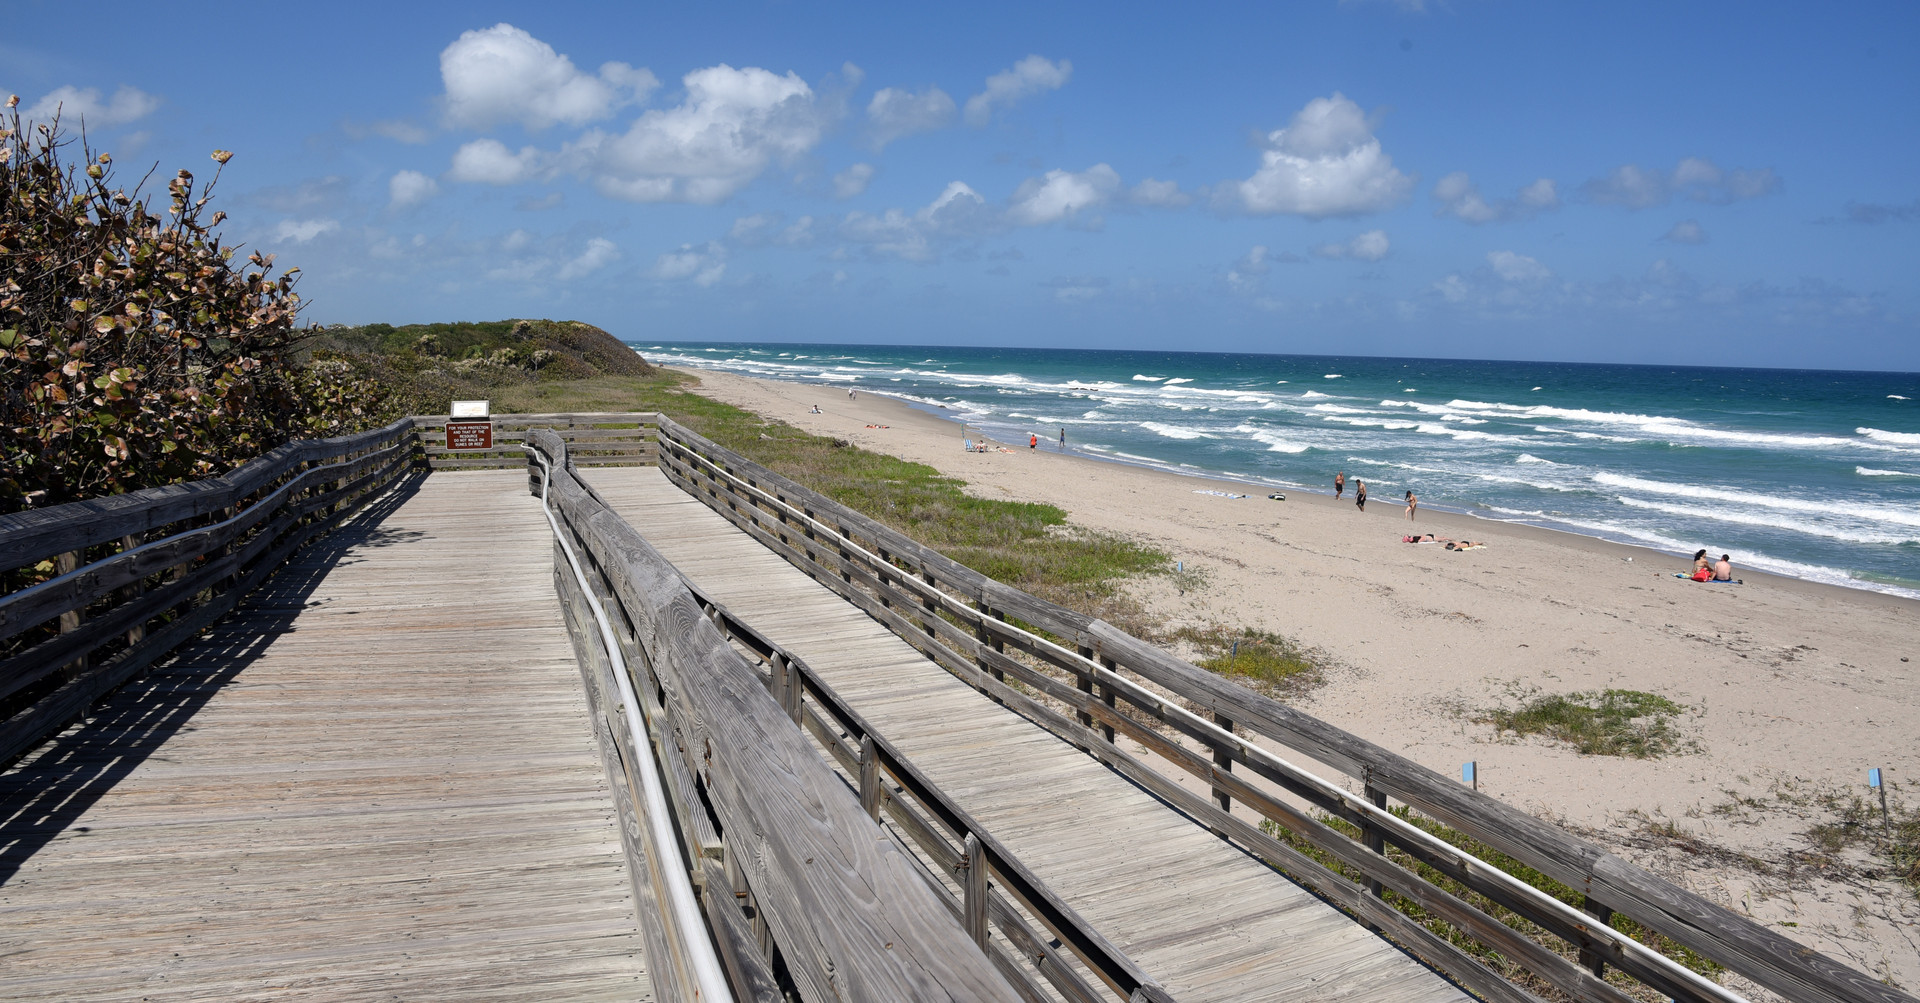 Affordable Apartment Living 1.5 Miles From Lake Worth Beach